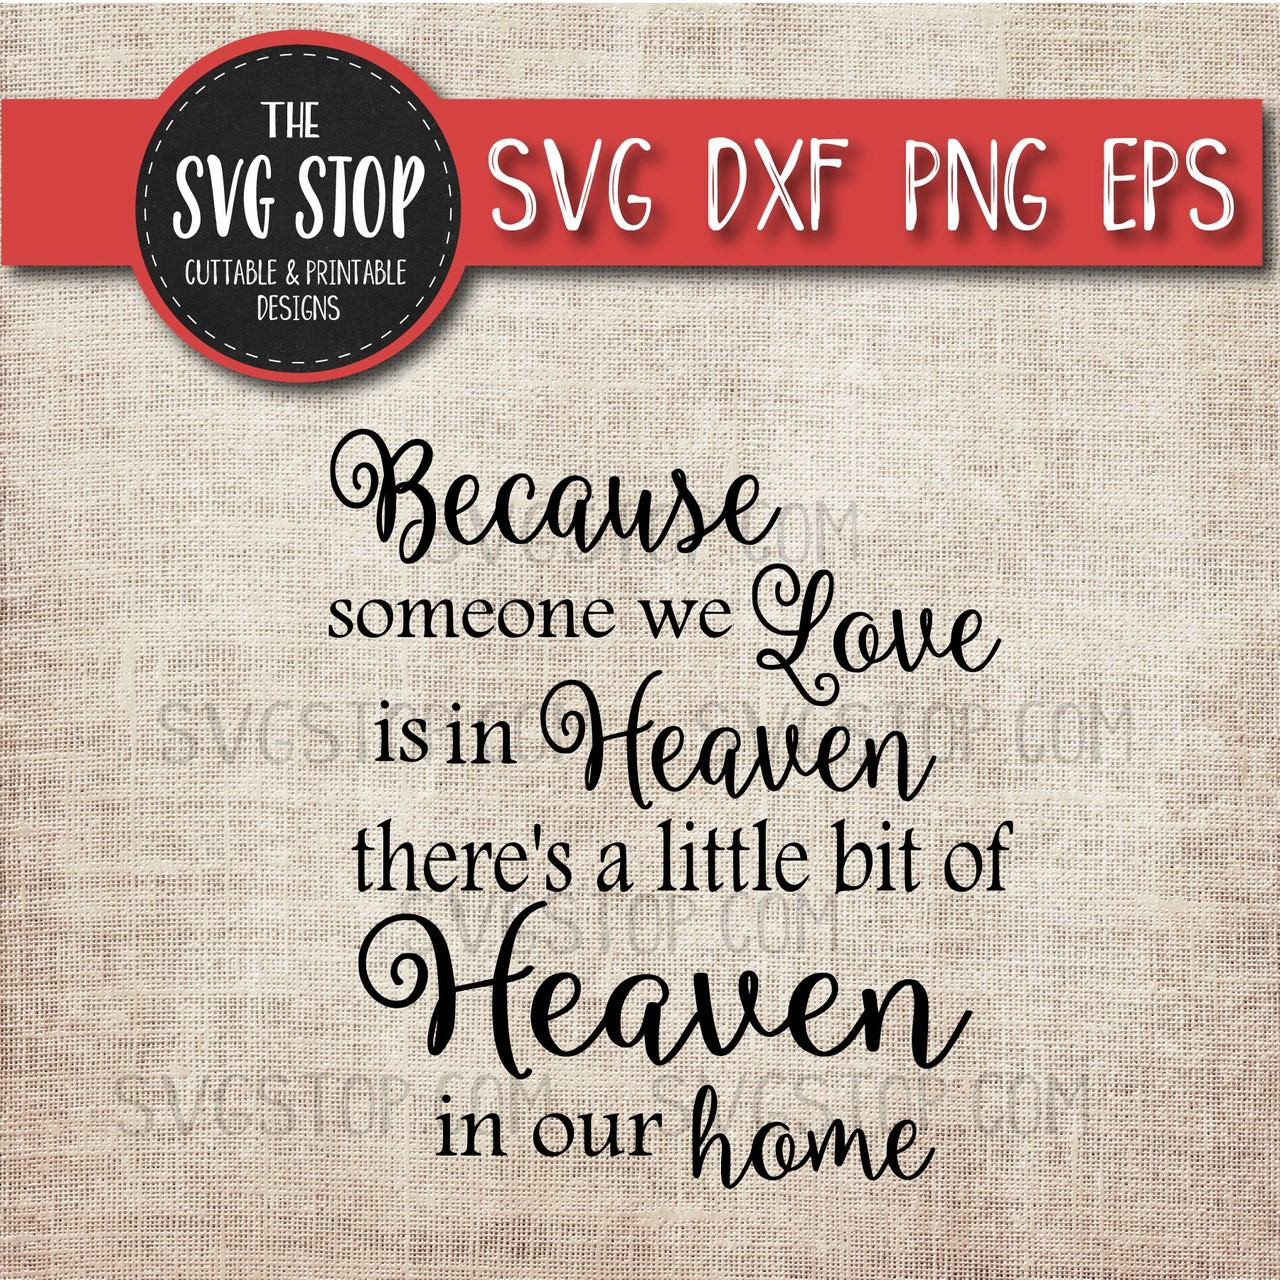 Download Free Svg Files Heaven In Our Home The Svg Stop Cuttable Printable Designs